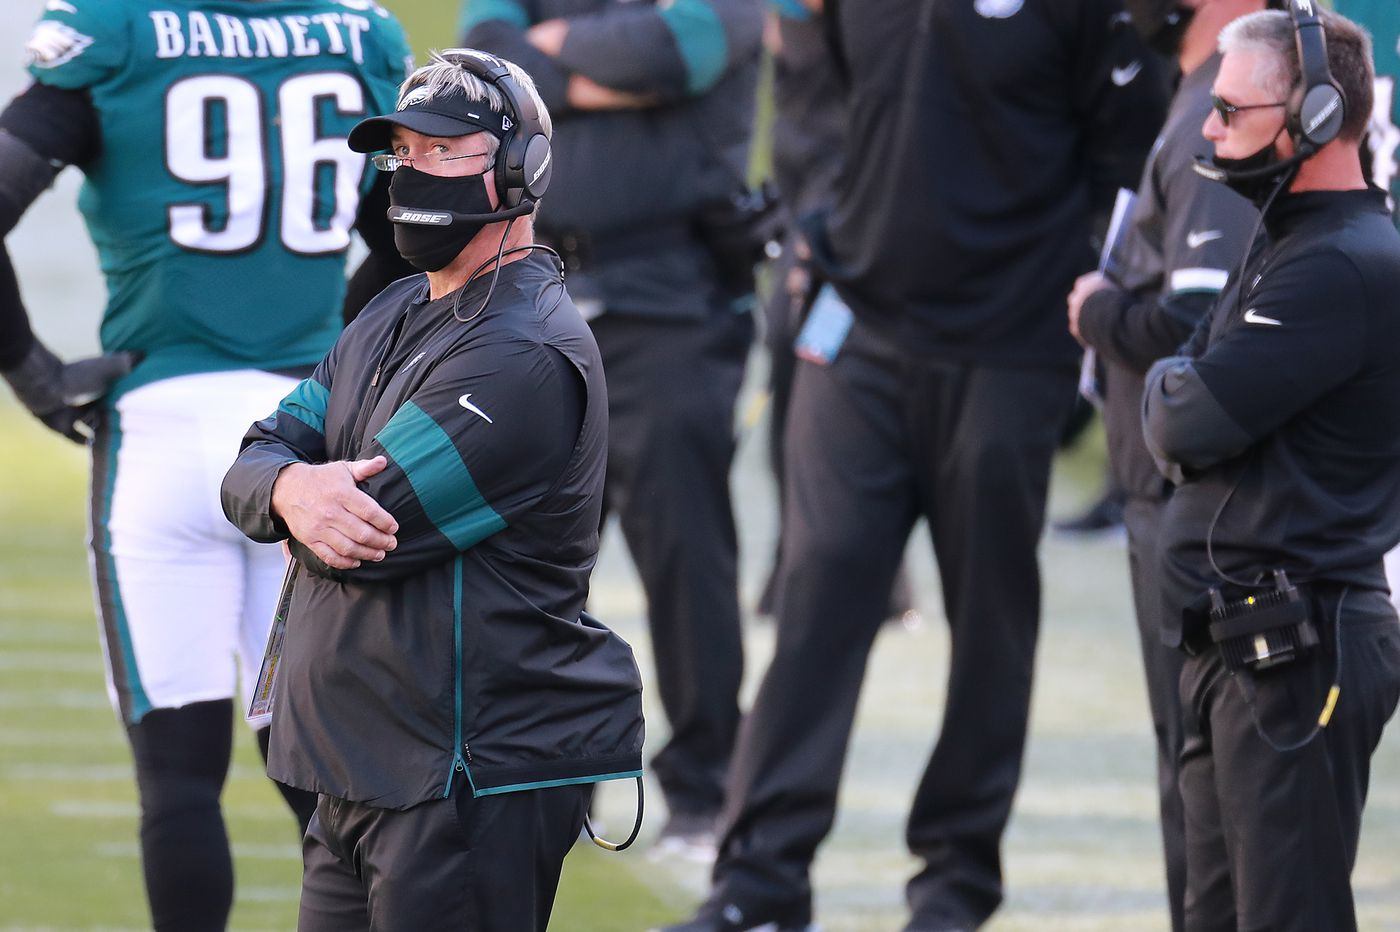 The Eagles' lack of identity on offense is a bigger concern than all of the mistakes | David Murphy